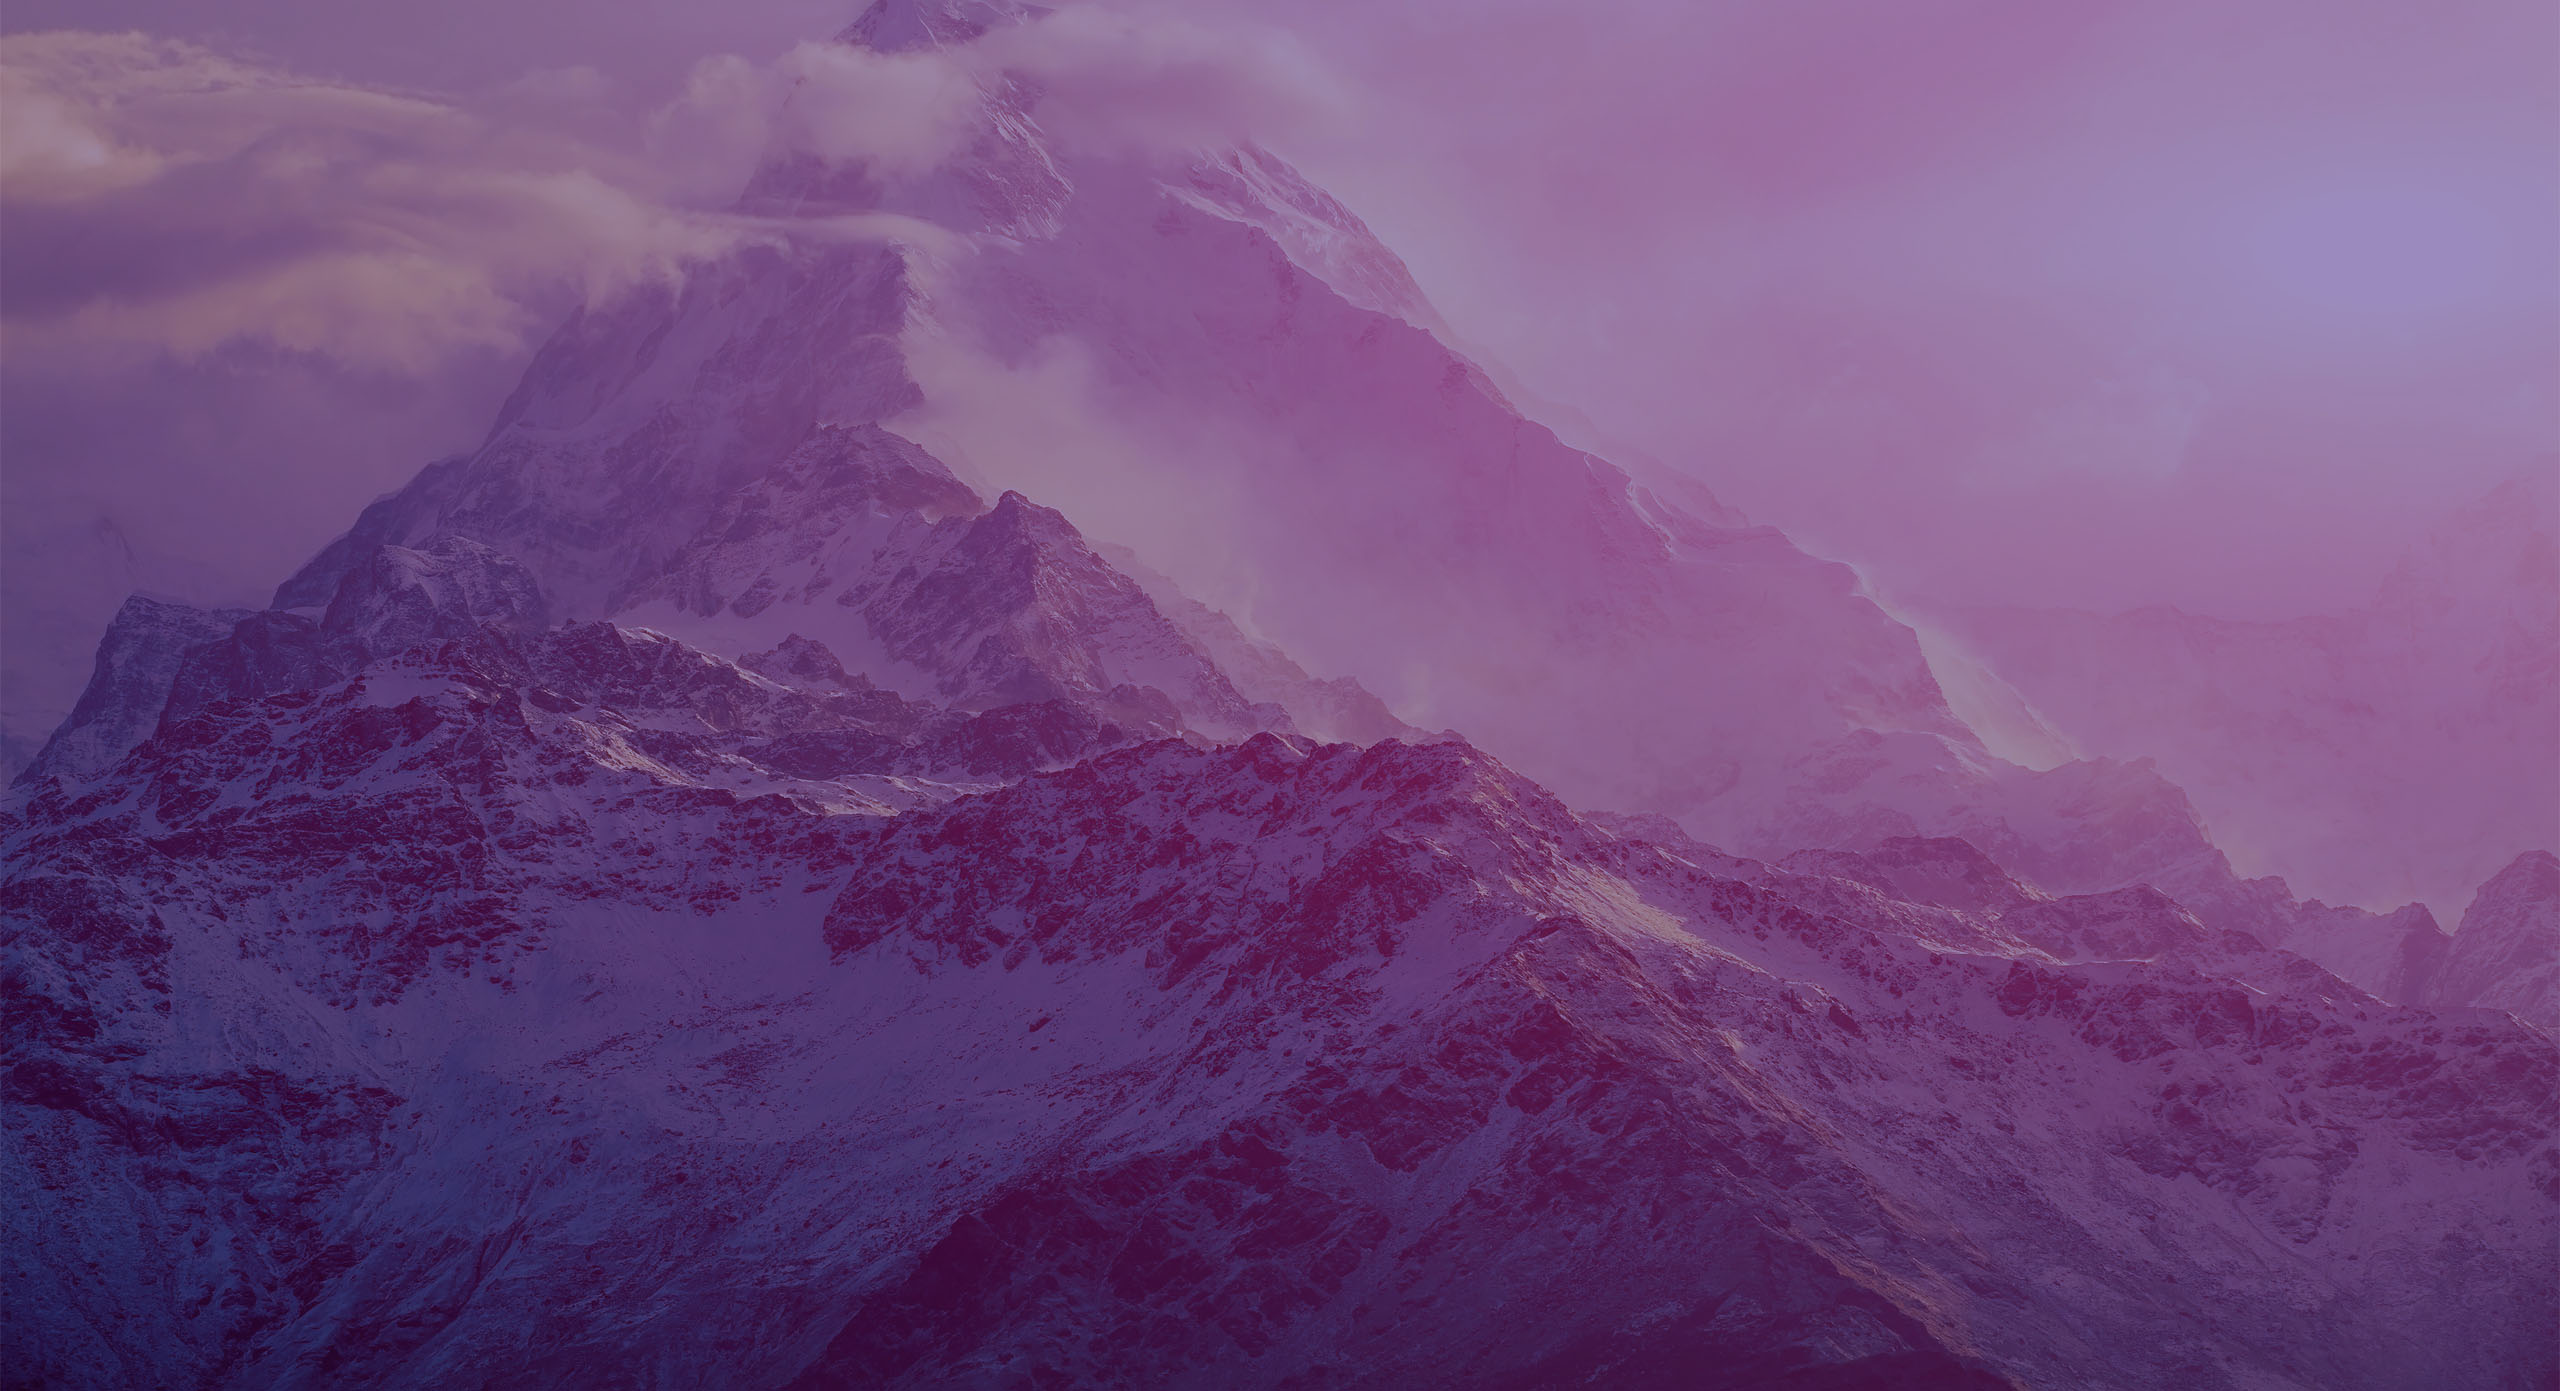 Background Image - Mountain